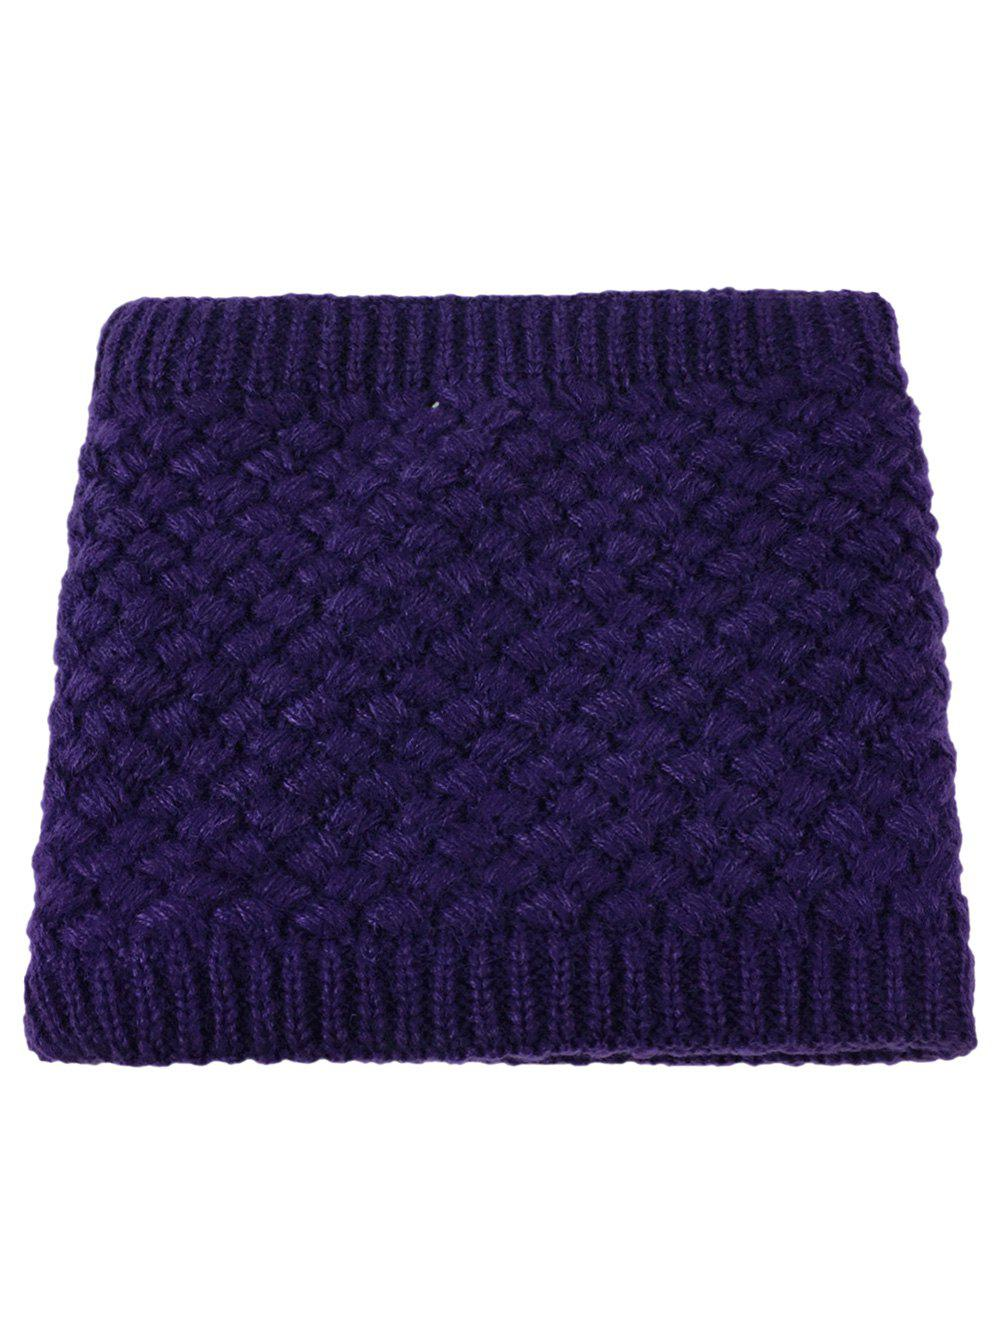 Outdoor Corn Shape Pattern Crochet Knitted Infinity Loop Scarf - DEEP PURPLE